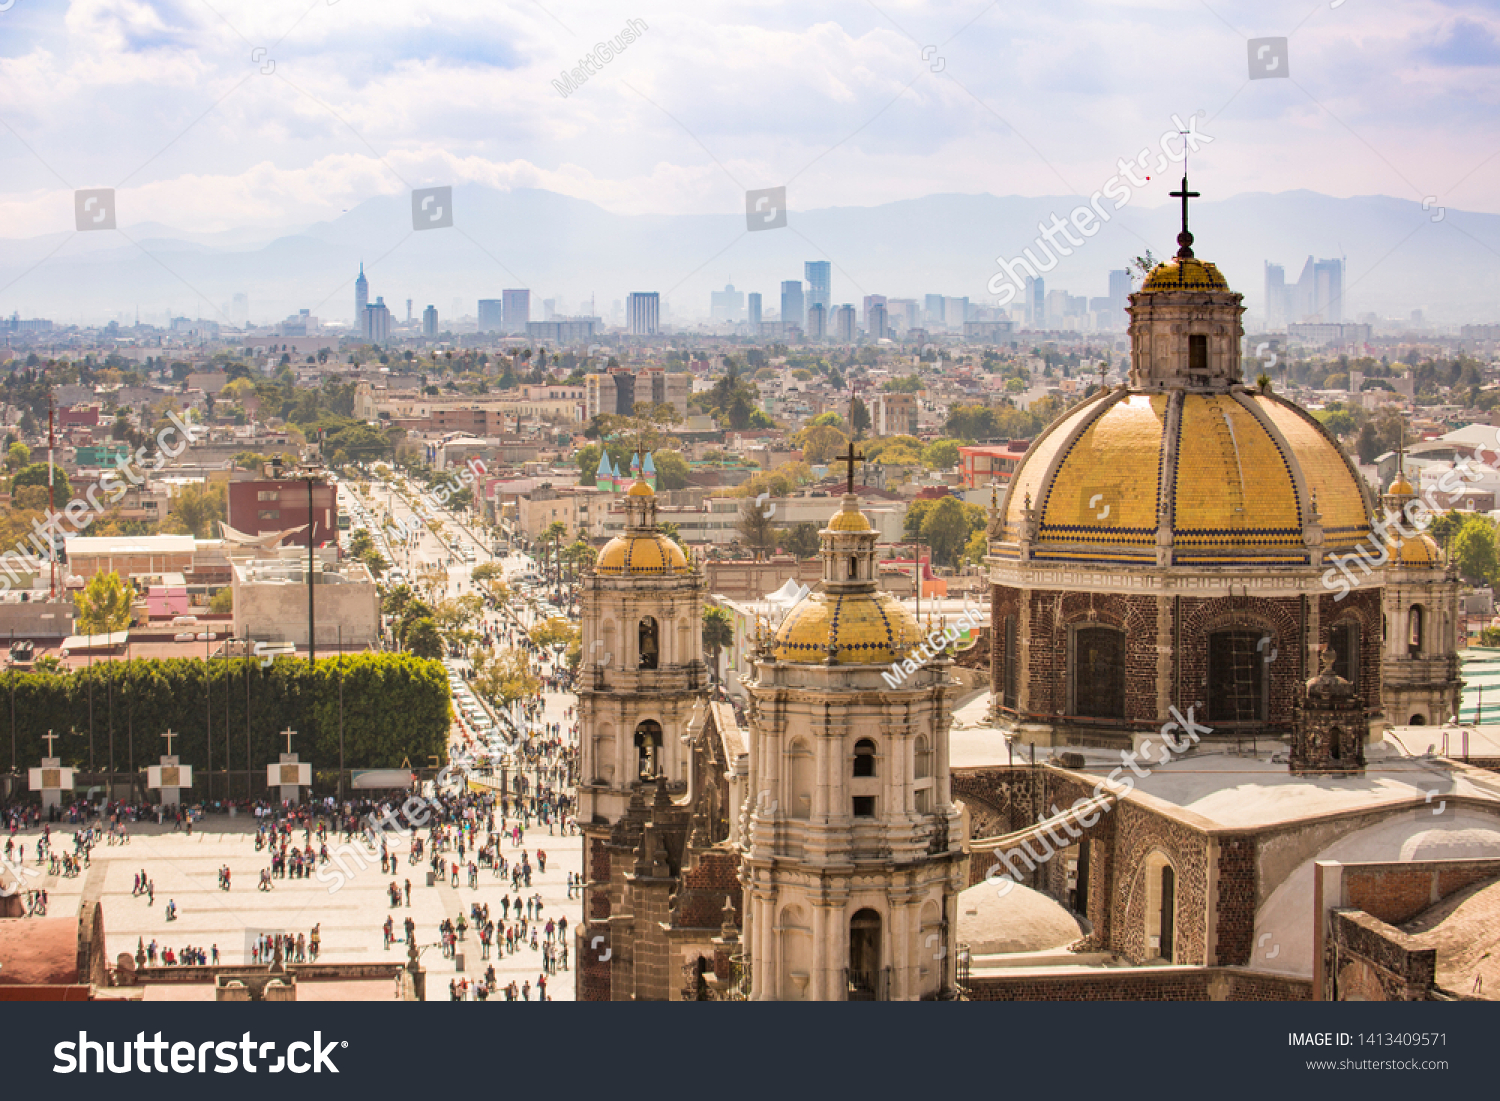 View of the Basilica of Our Lady of Guadalupe complex. #1413409571